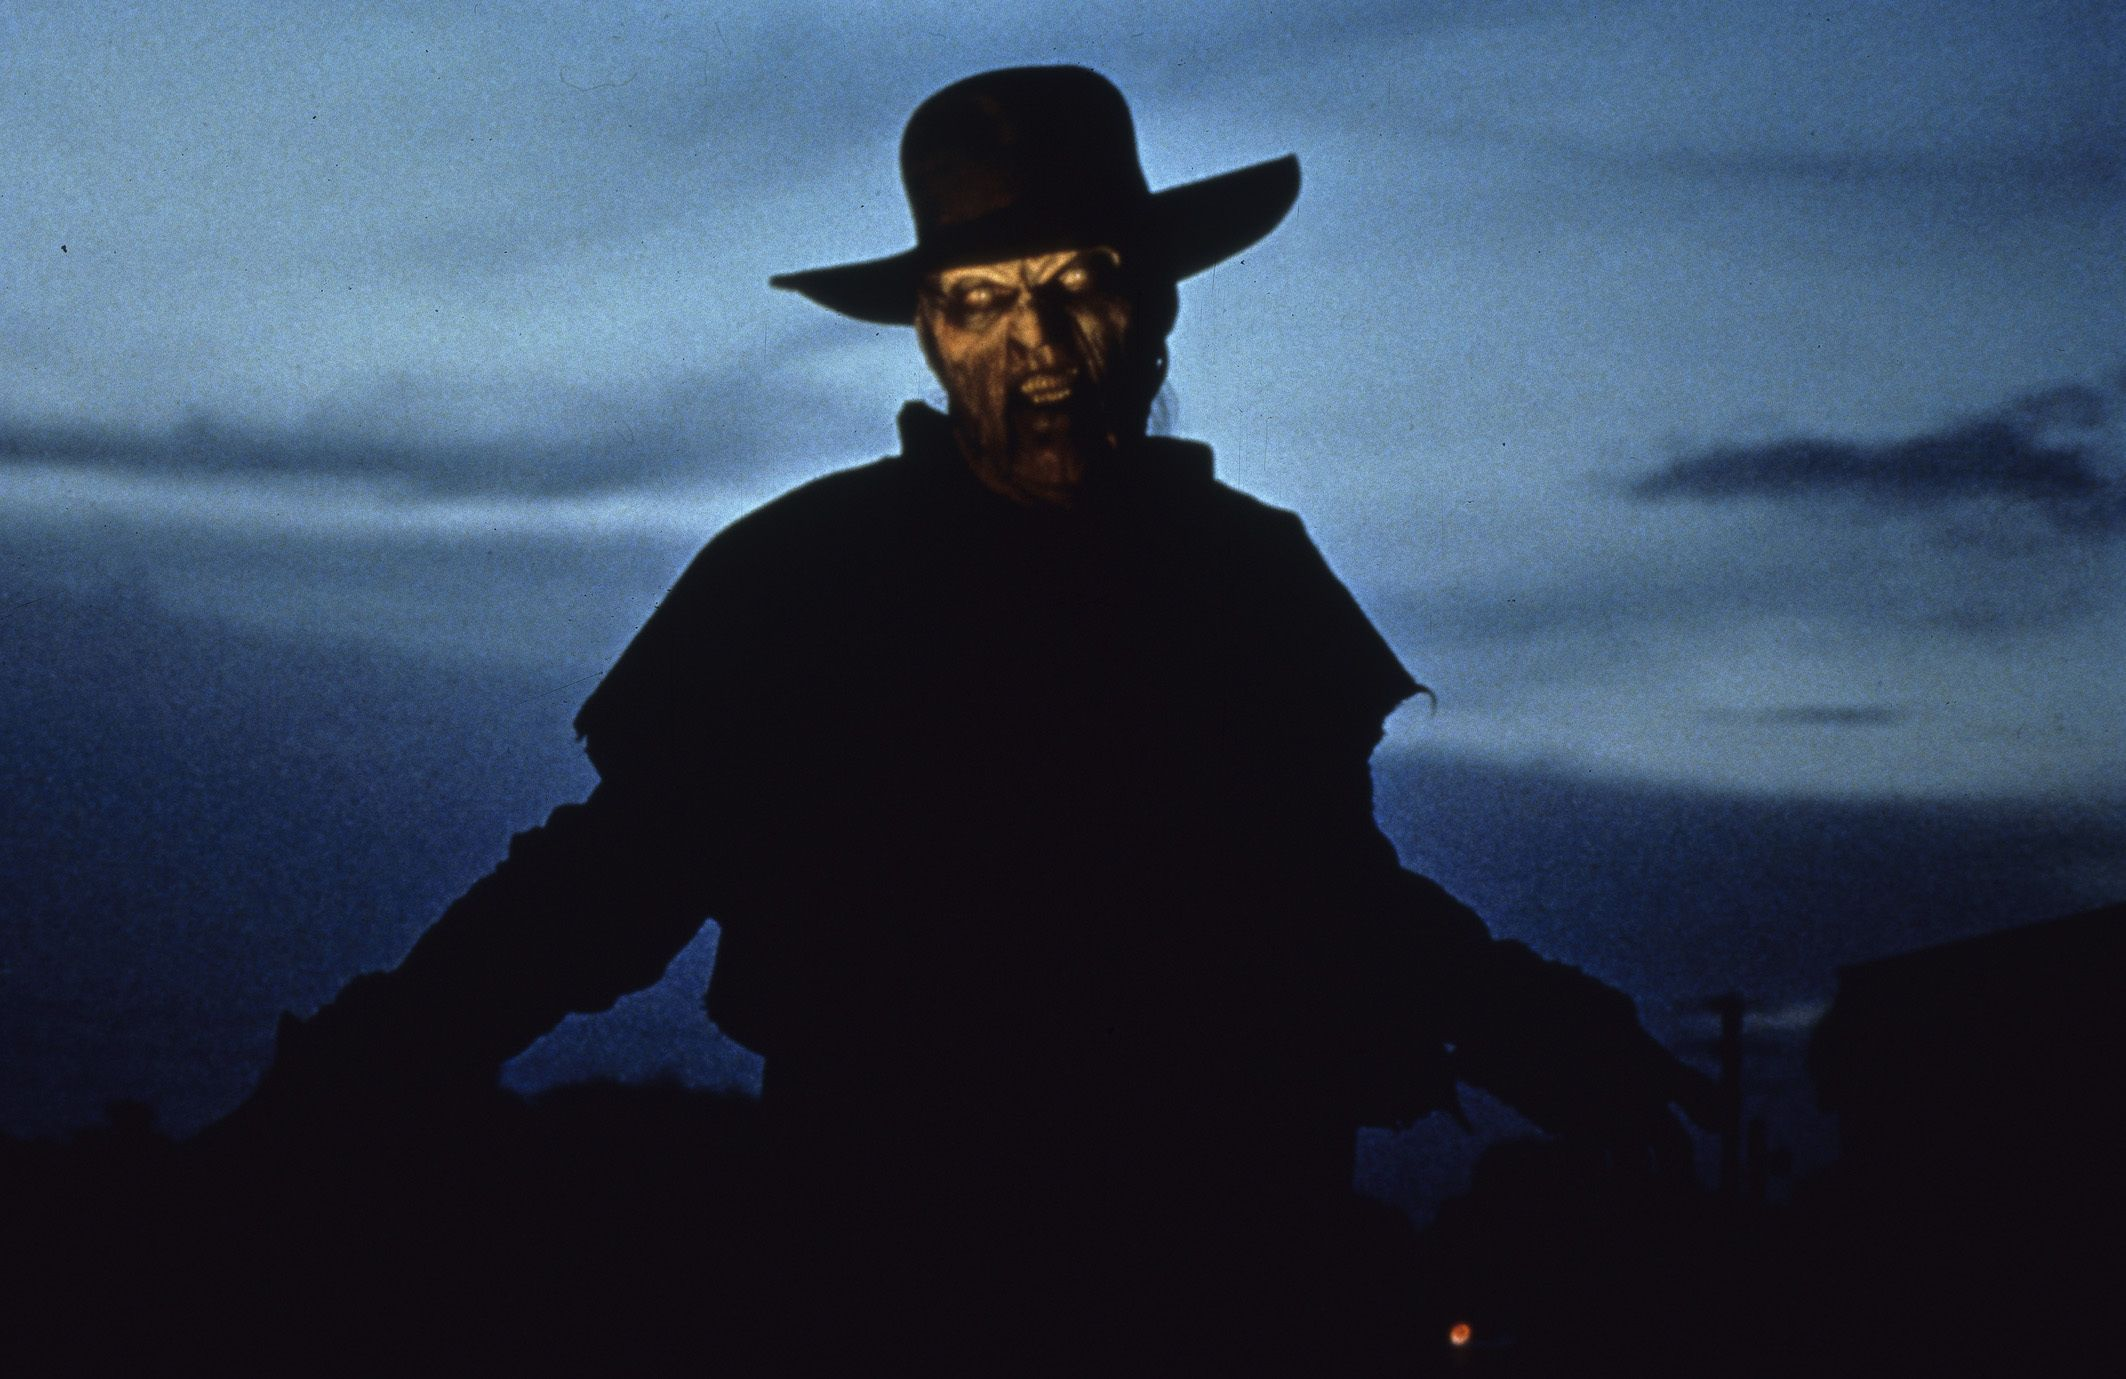 Jeepers Creepers 3 Is Happening Soon Jeepers Creepers Jeepers Creepers 3 Creepers